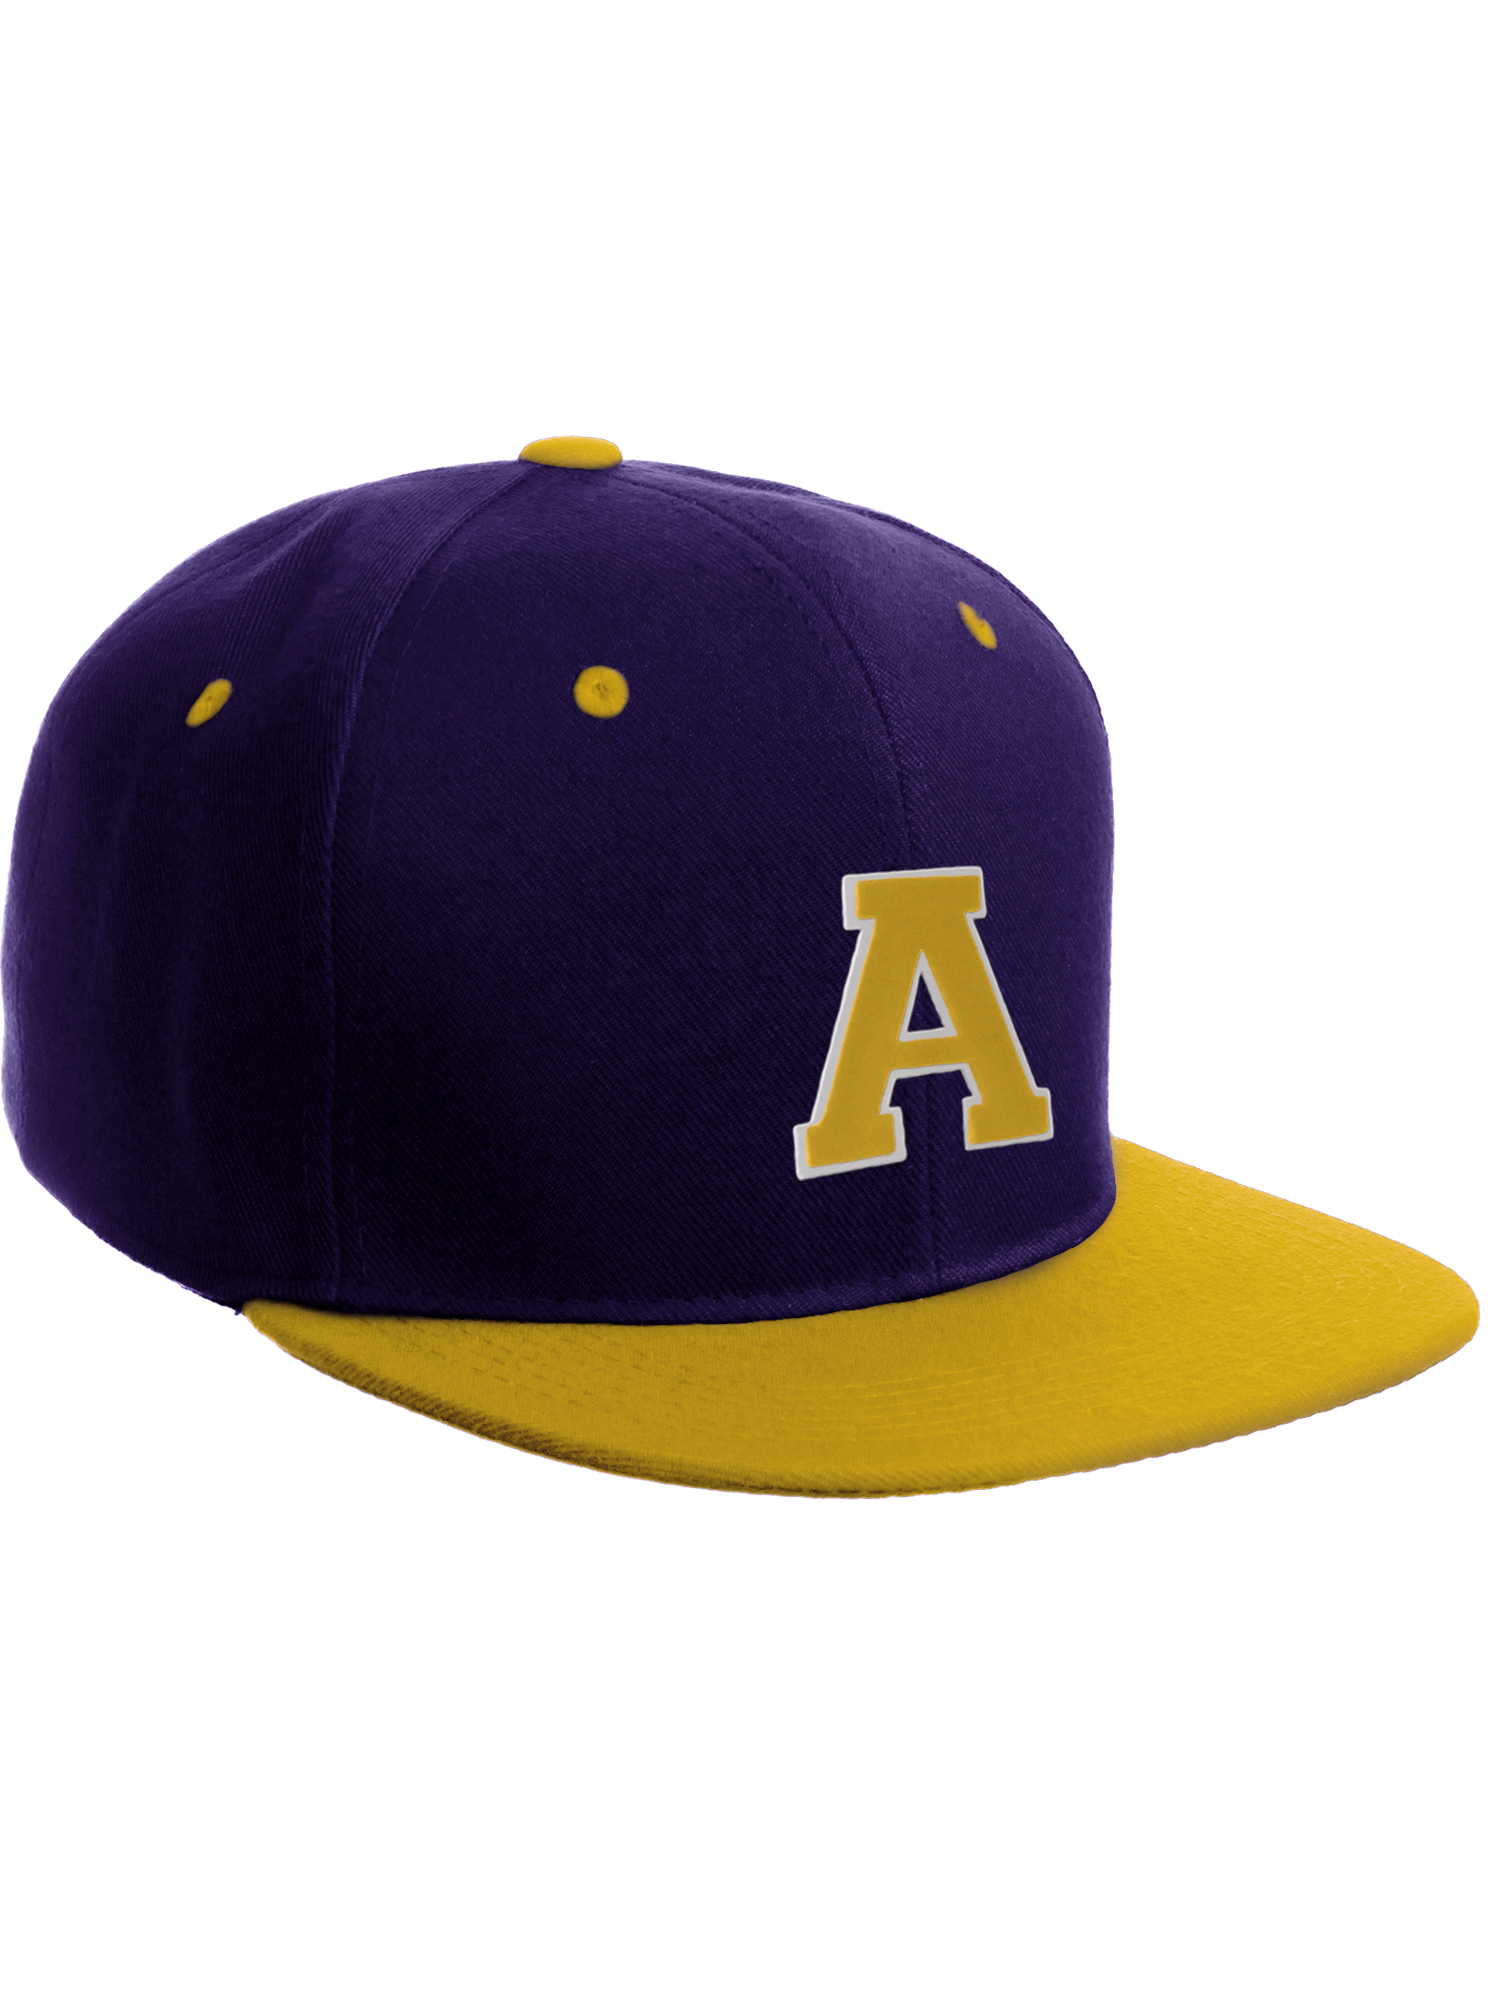 a066814ffa43c Classic Snapback Hat w Custom A-Z Initial Raised Letters - Purple Gold Hat  White Gold Initial A